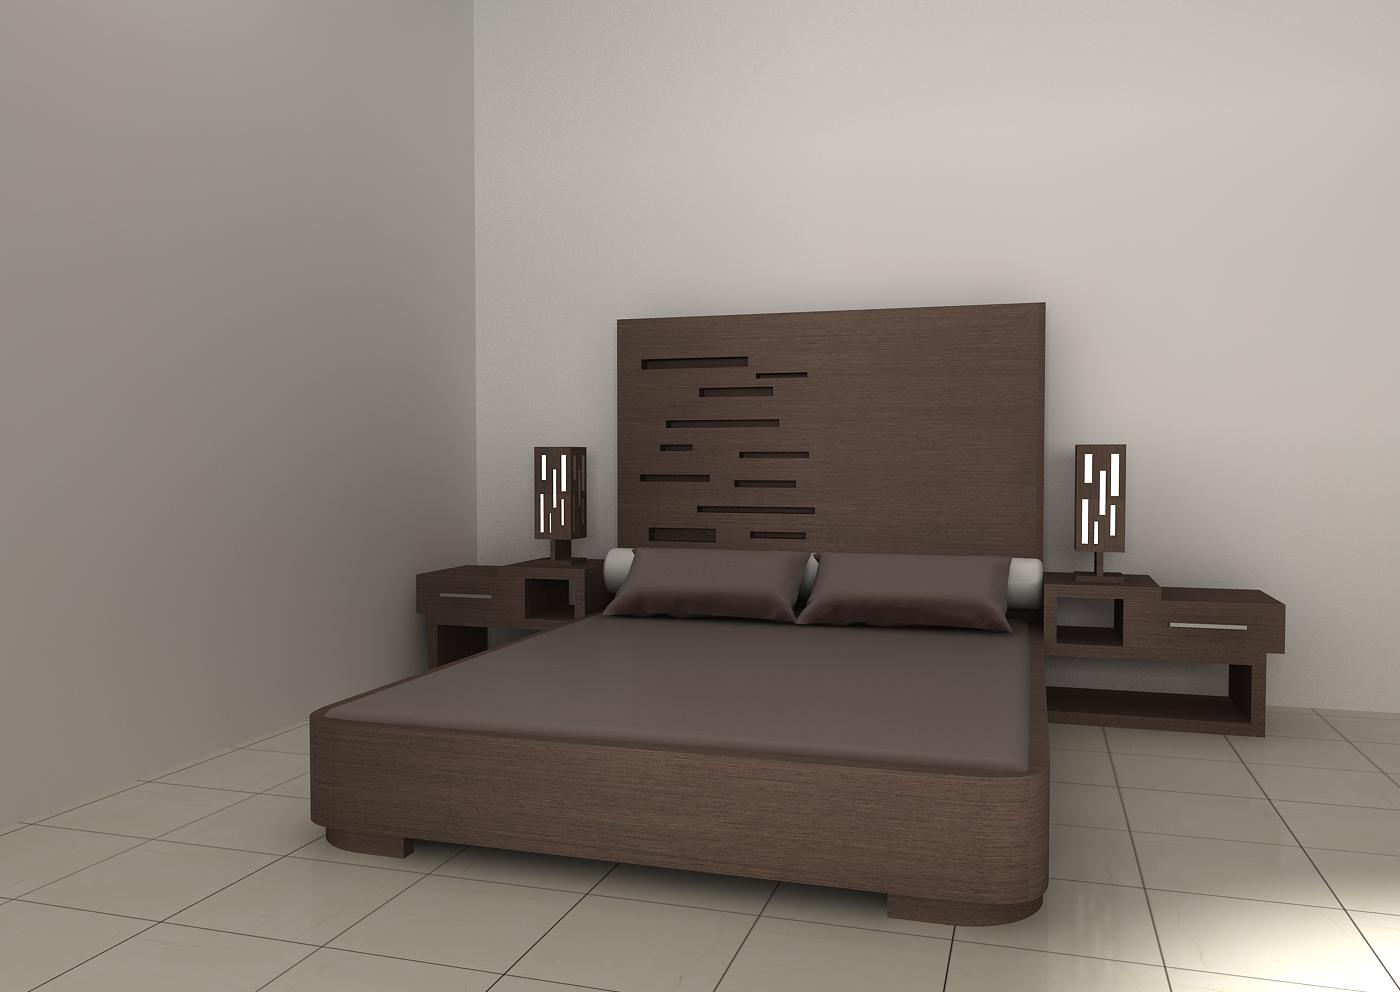 model tete de lit une tte de lit faon cloison with model tete de lit trendy pallet headboard. Black Bedroom Furniture Sets. Home Design Ideas